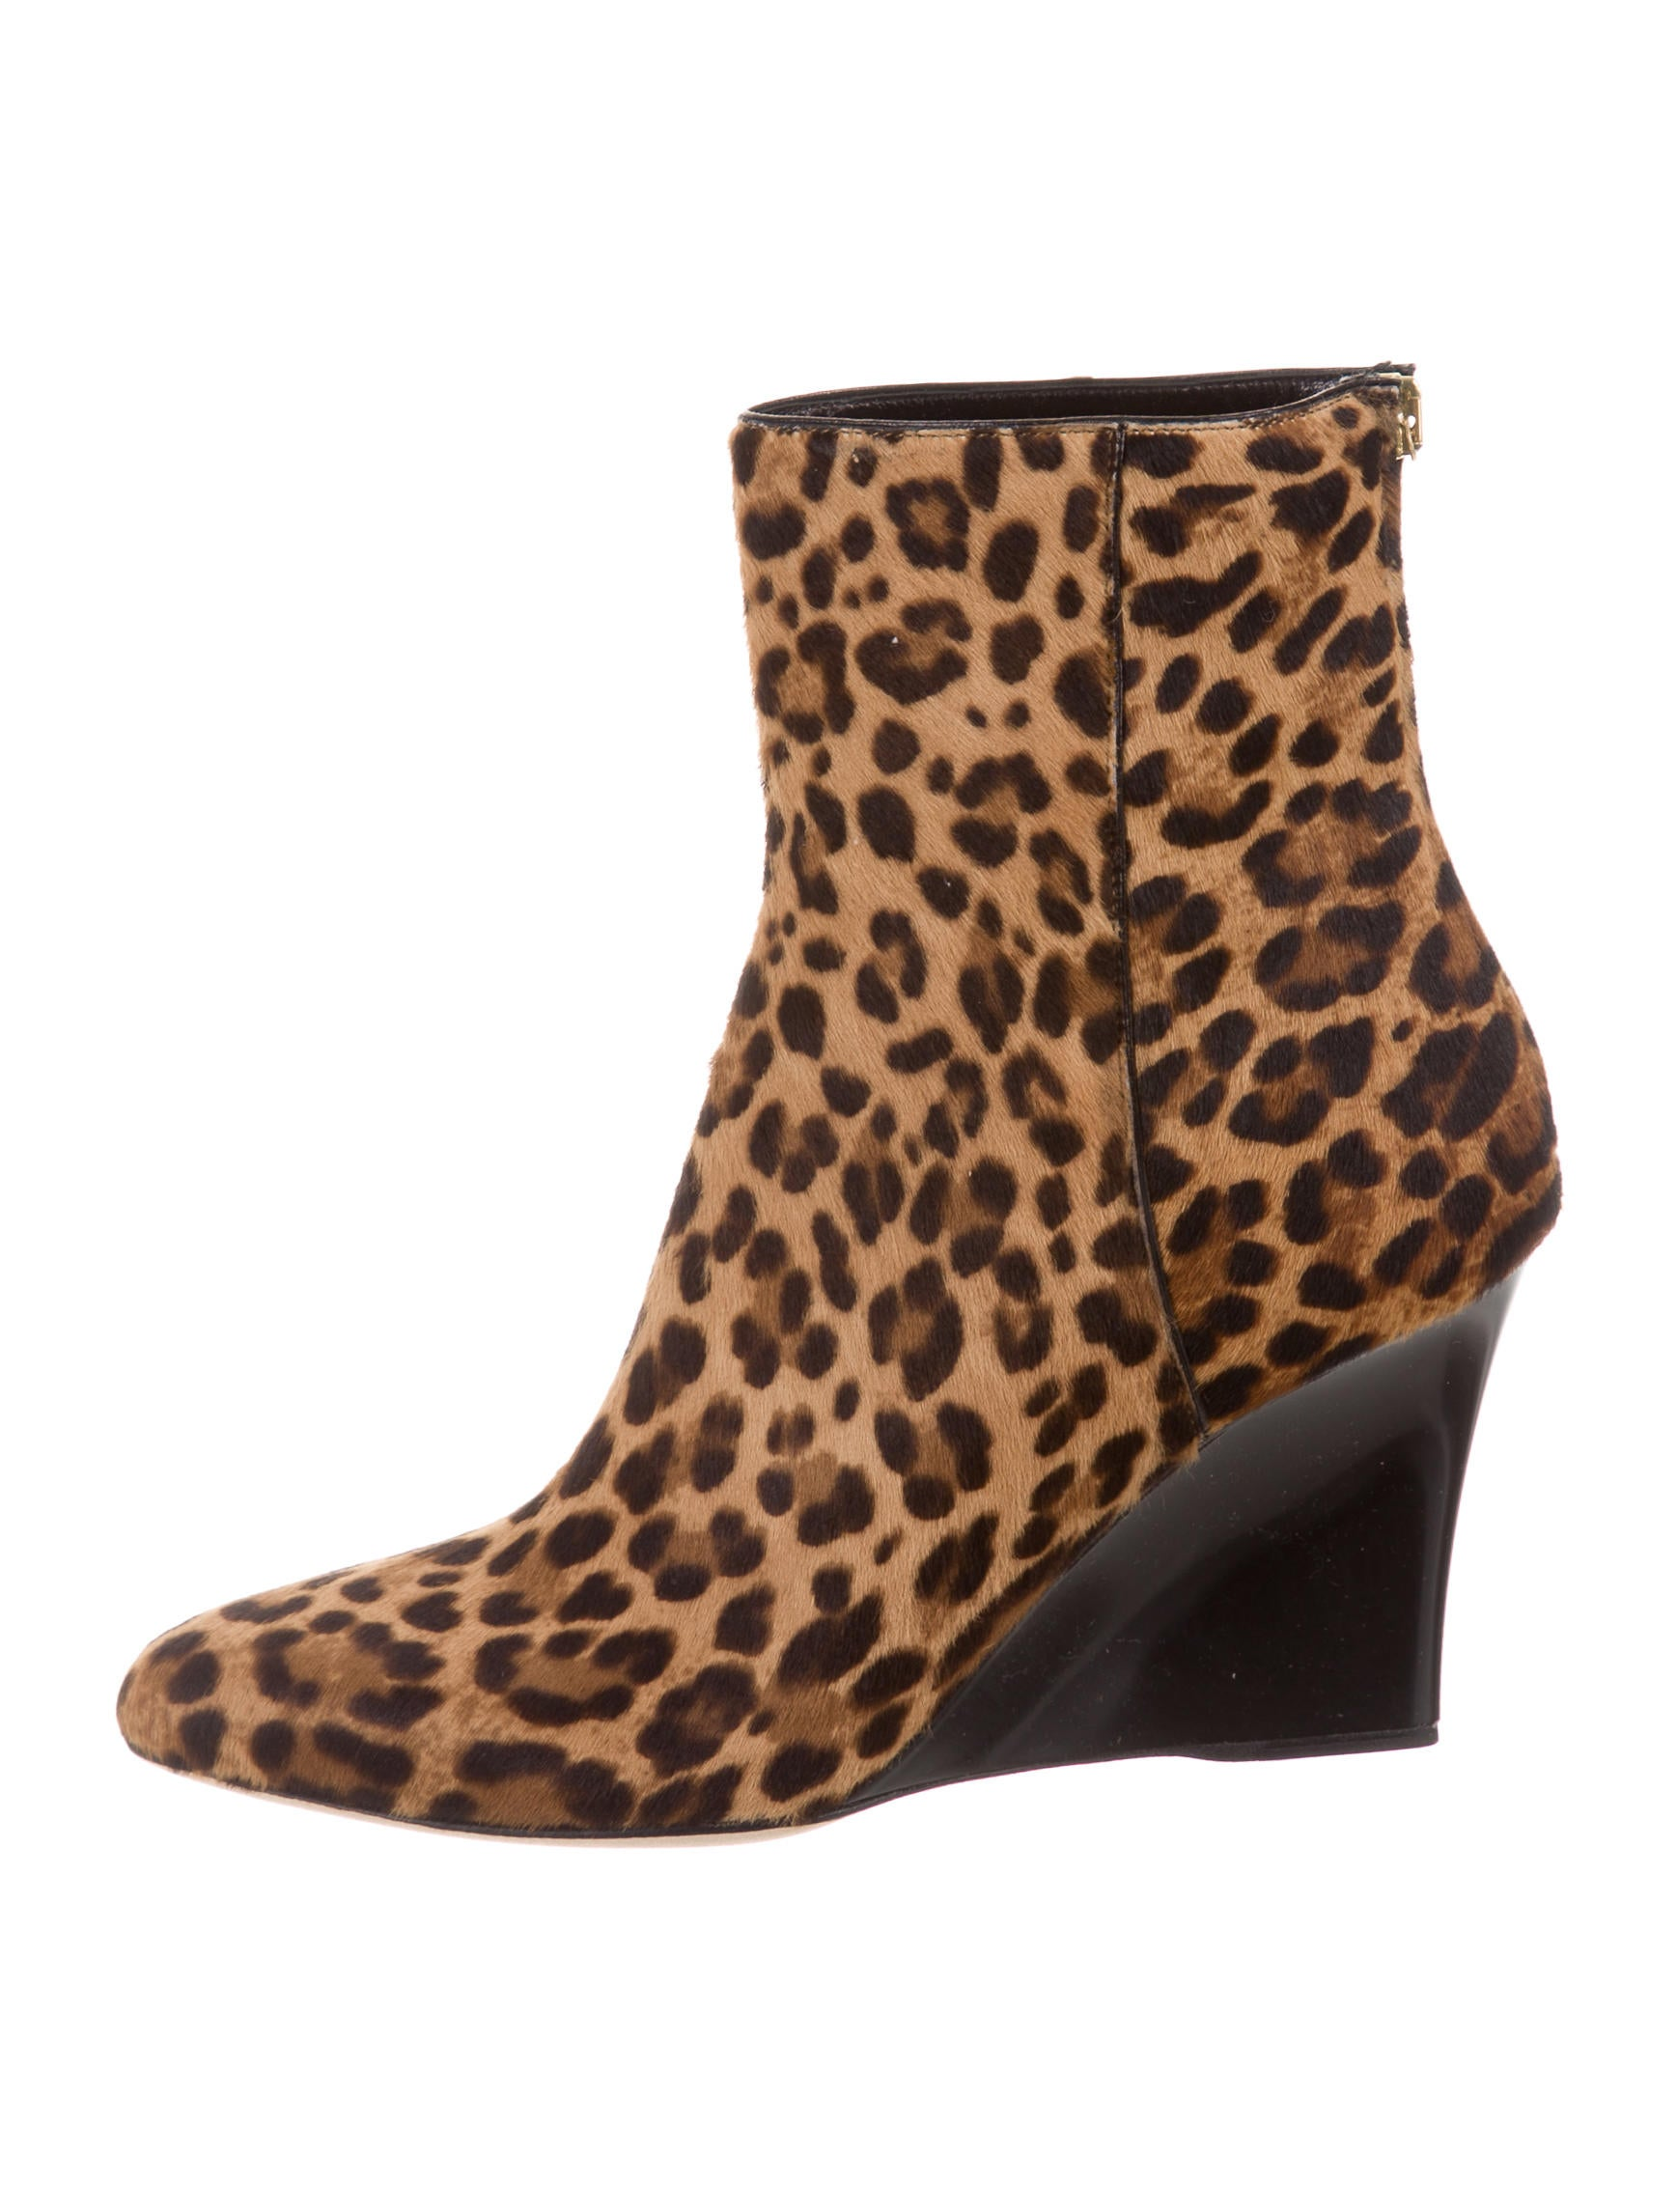 Features- Leopard Style Wedge Heel with a platform can not only give leg-lengthening appeal but also keep feet comfortable and relaxed while walking.